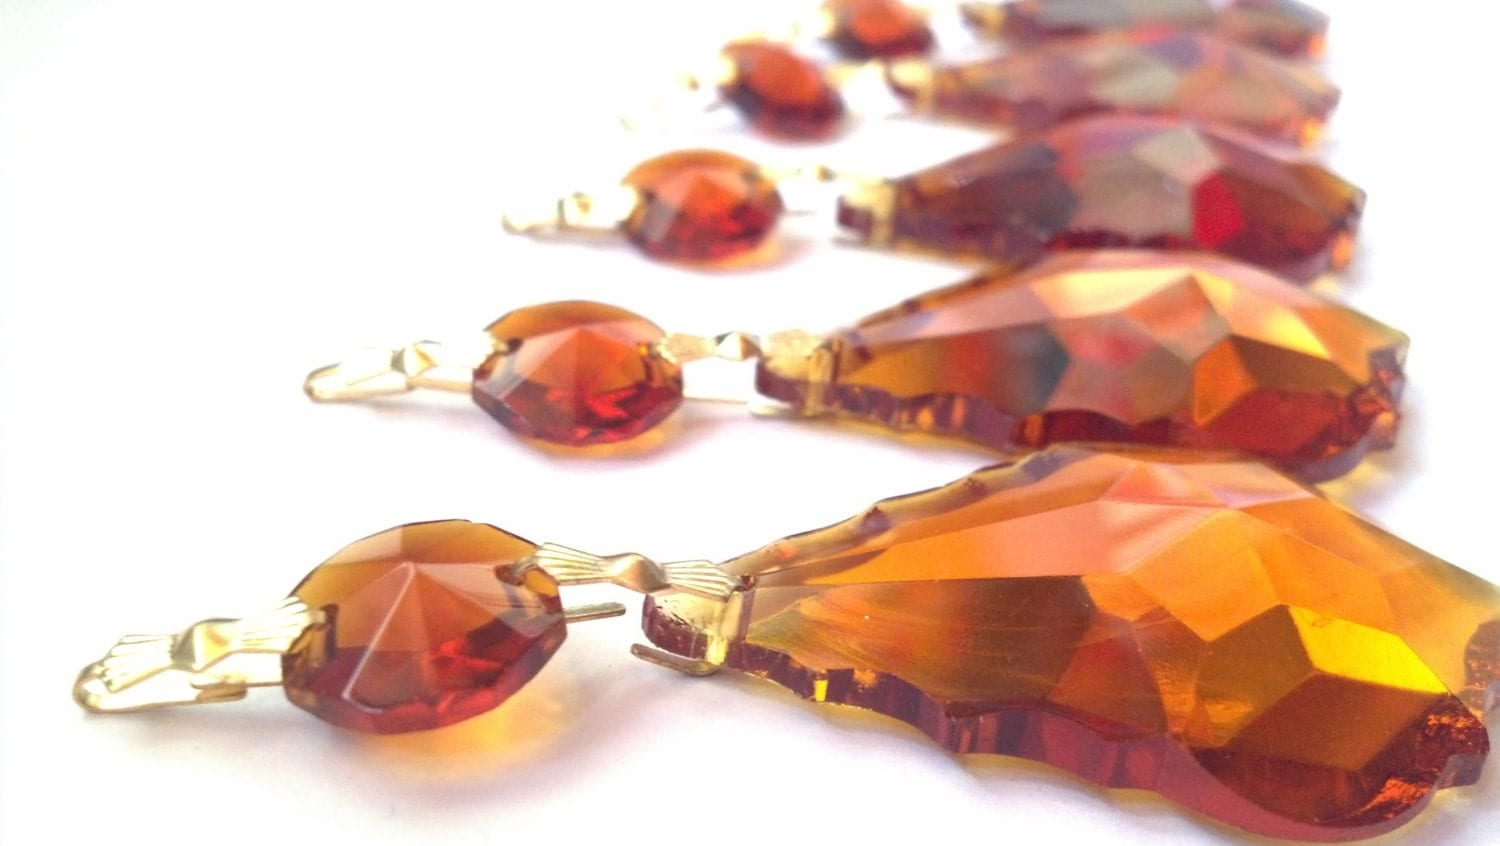 5 Amber 50mm French Cut Chandelier Crystals Pendalogue Prisms